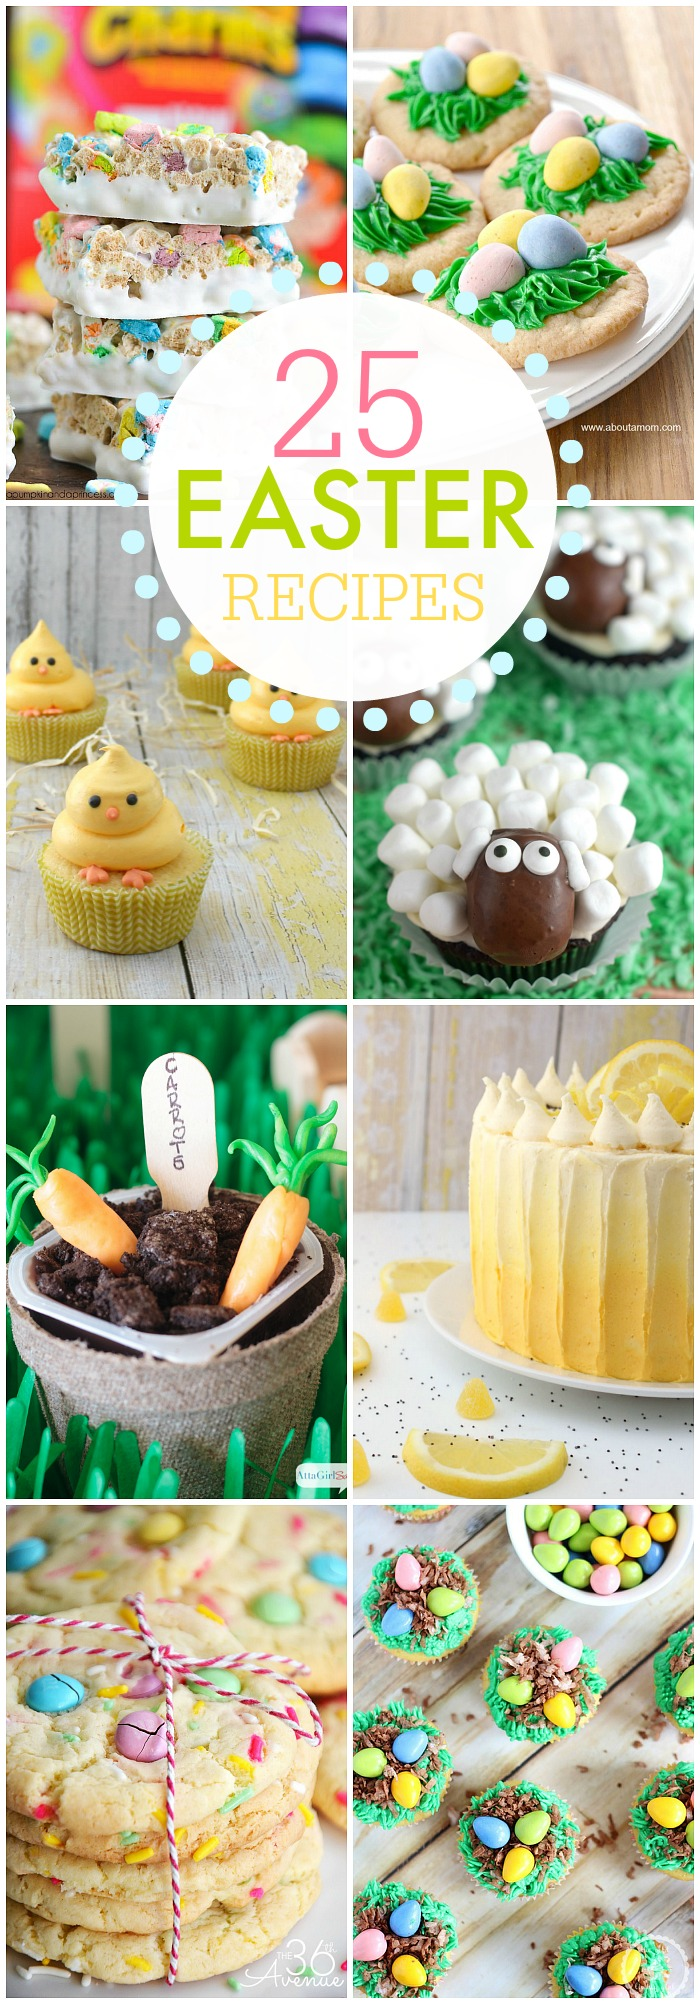 25 Easter Recipes at the36thavenue.com